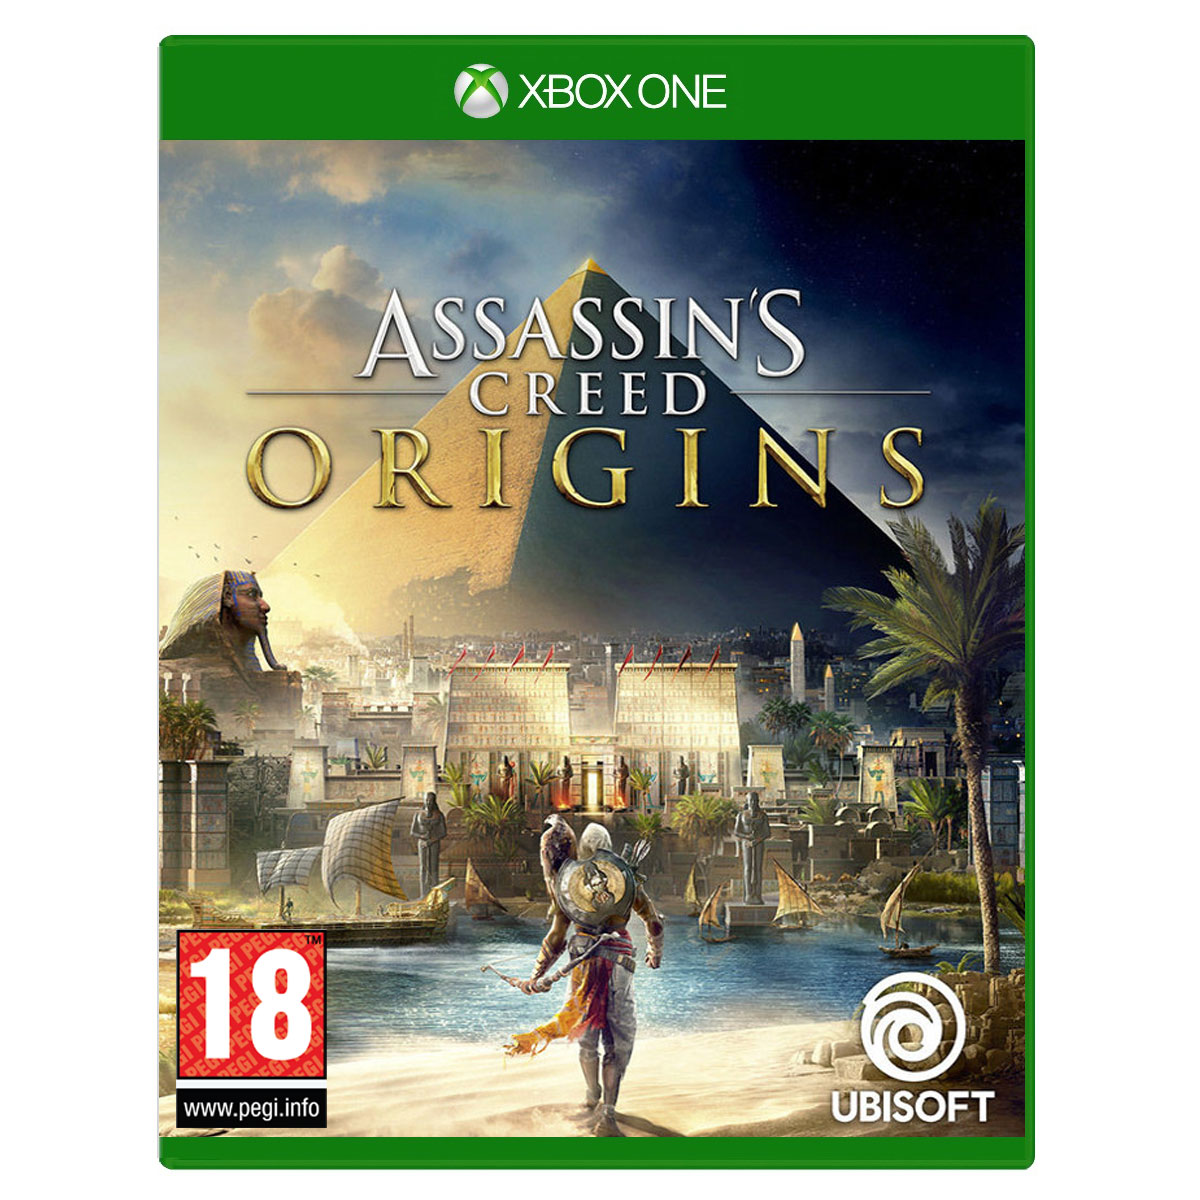 Jeux Xbox One Assassin's Creed : Origins (Xbox One) Assassin's Creed : Origins (Xbox One)